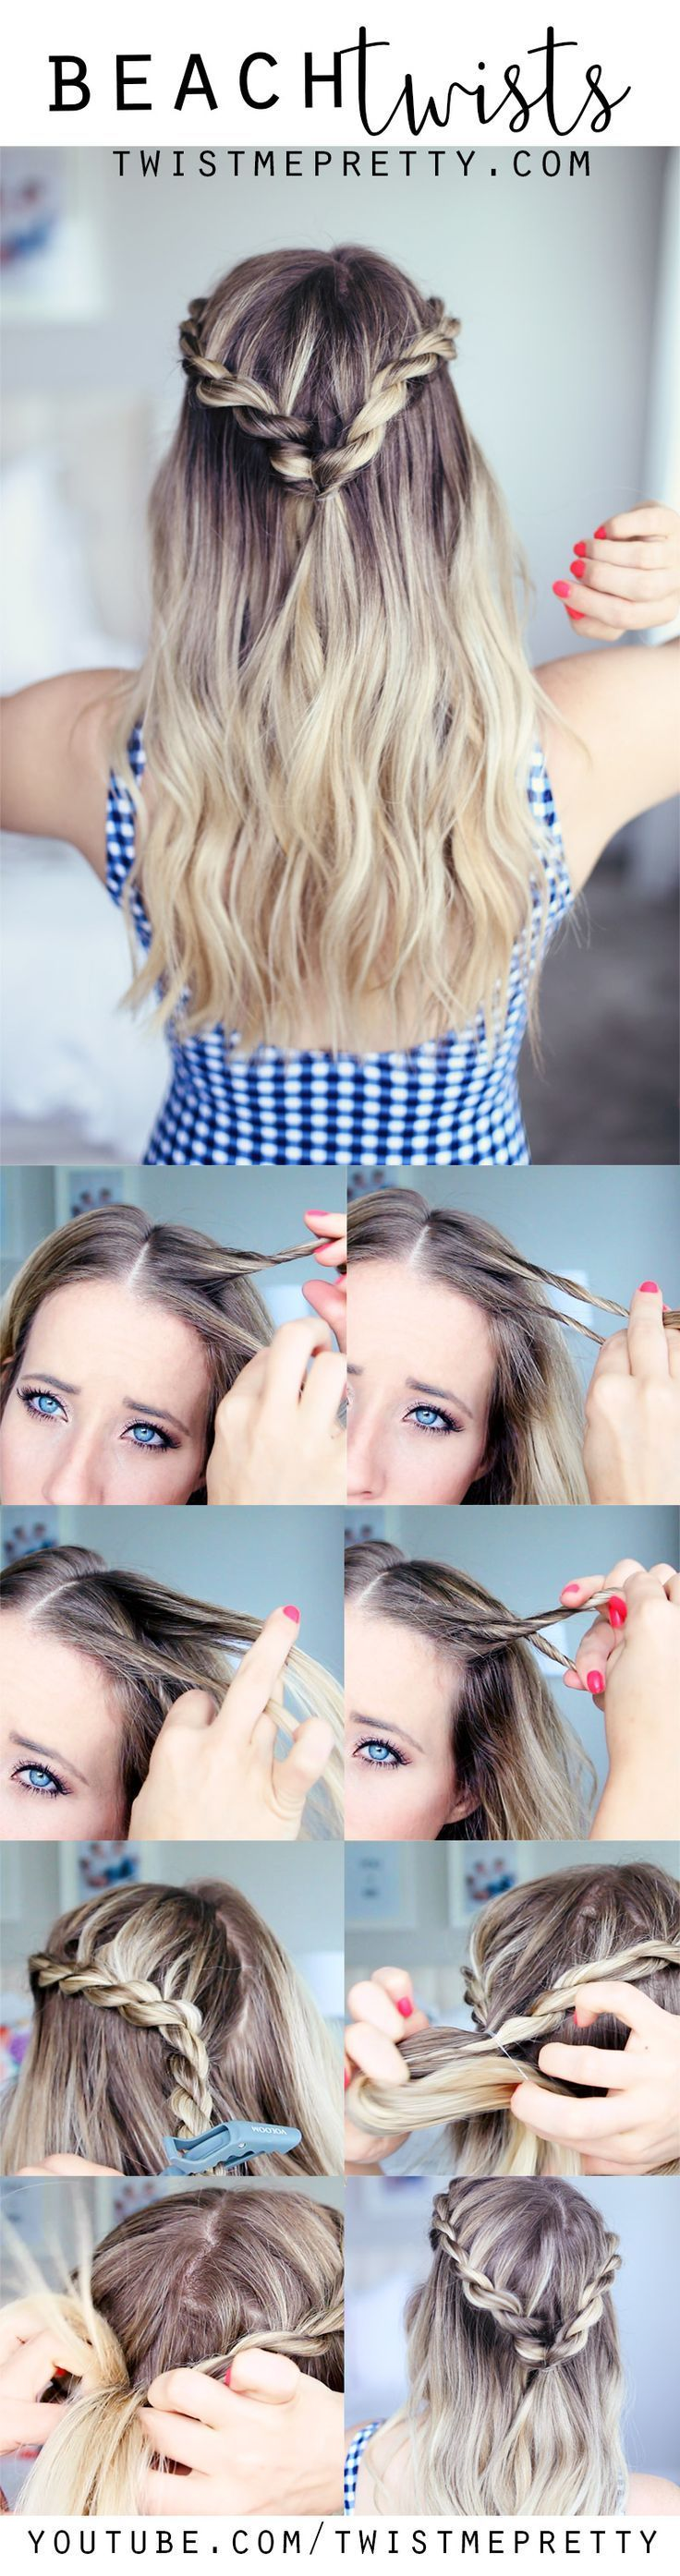 216 best Tutoriales para el cabello images on Pinterest